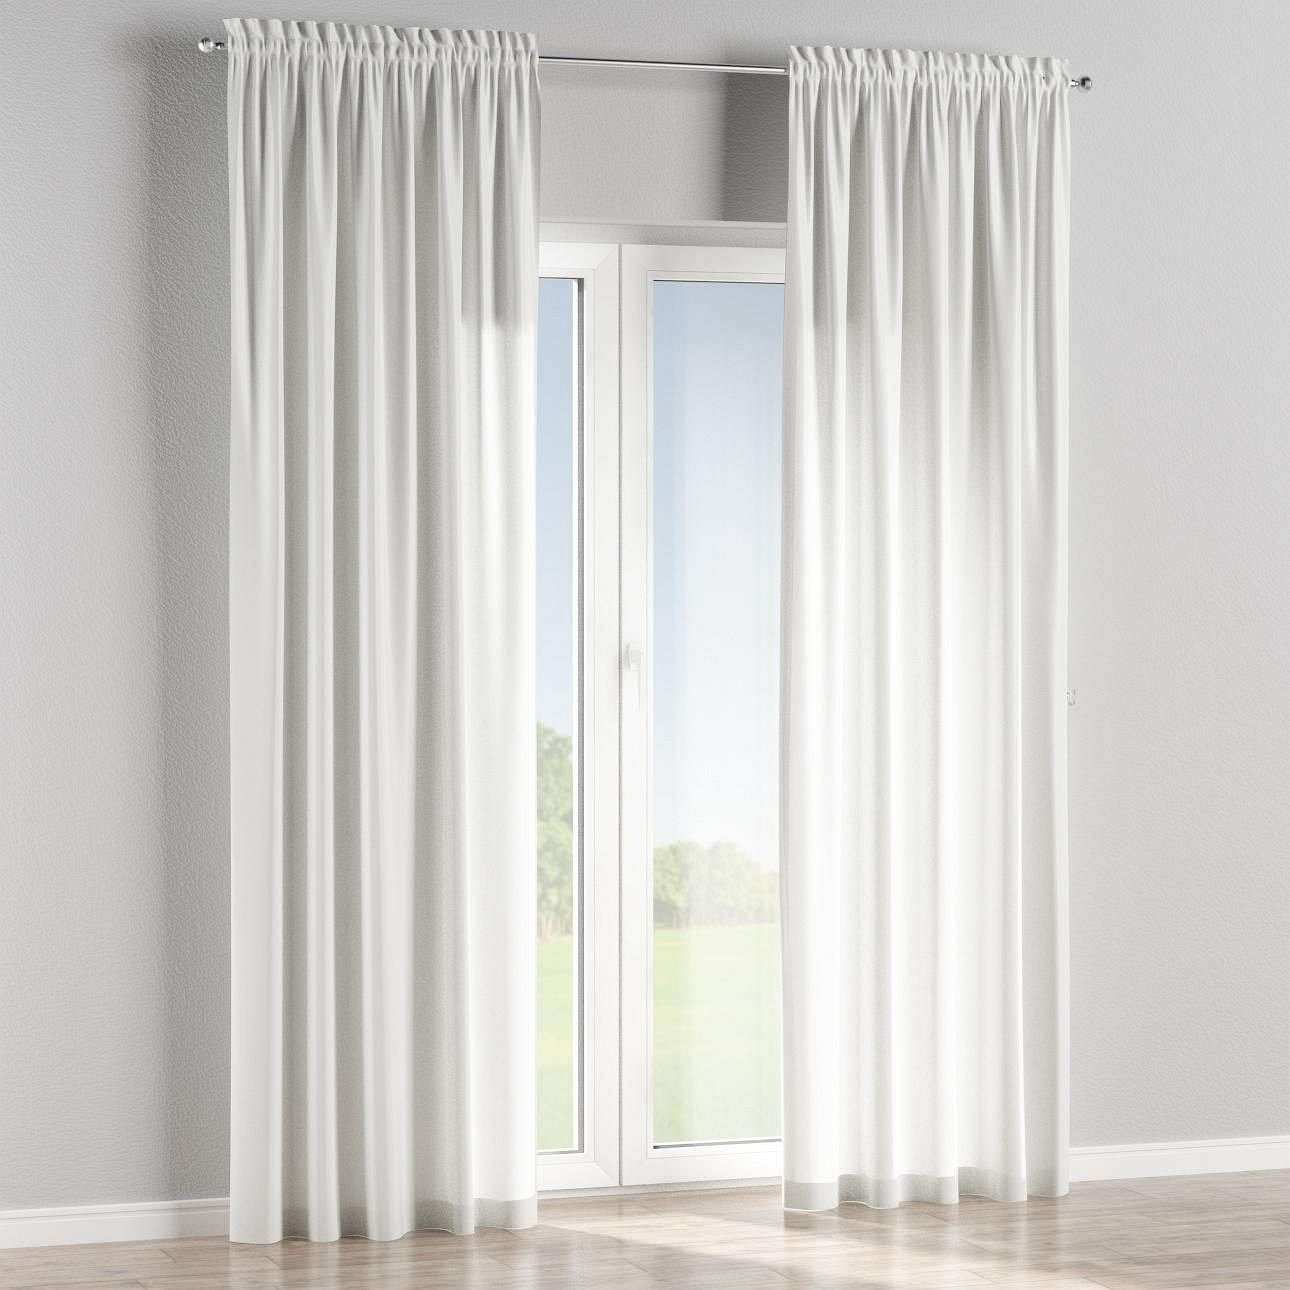 Slot and frill lined curtains in collection Marina, fabric: 140-15